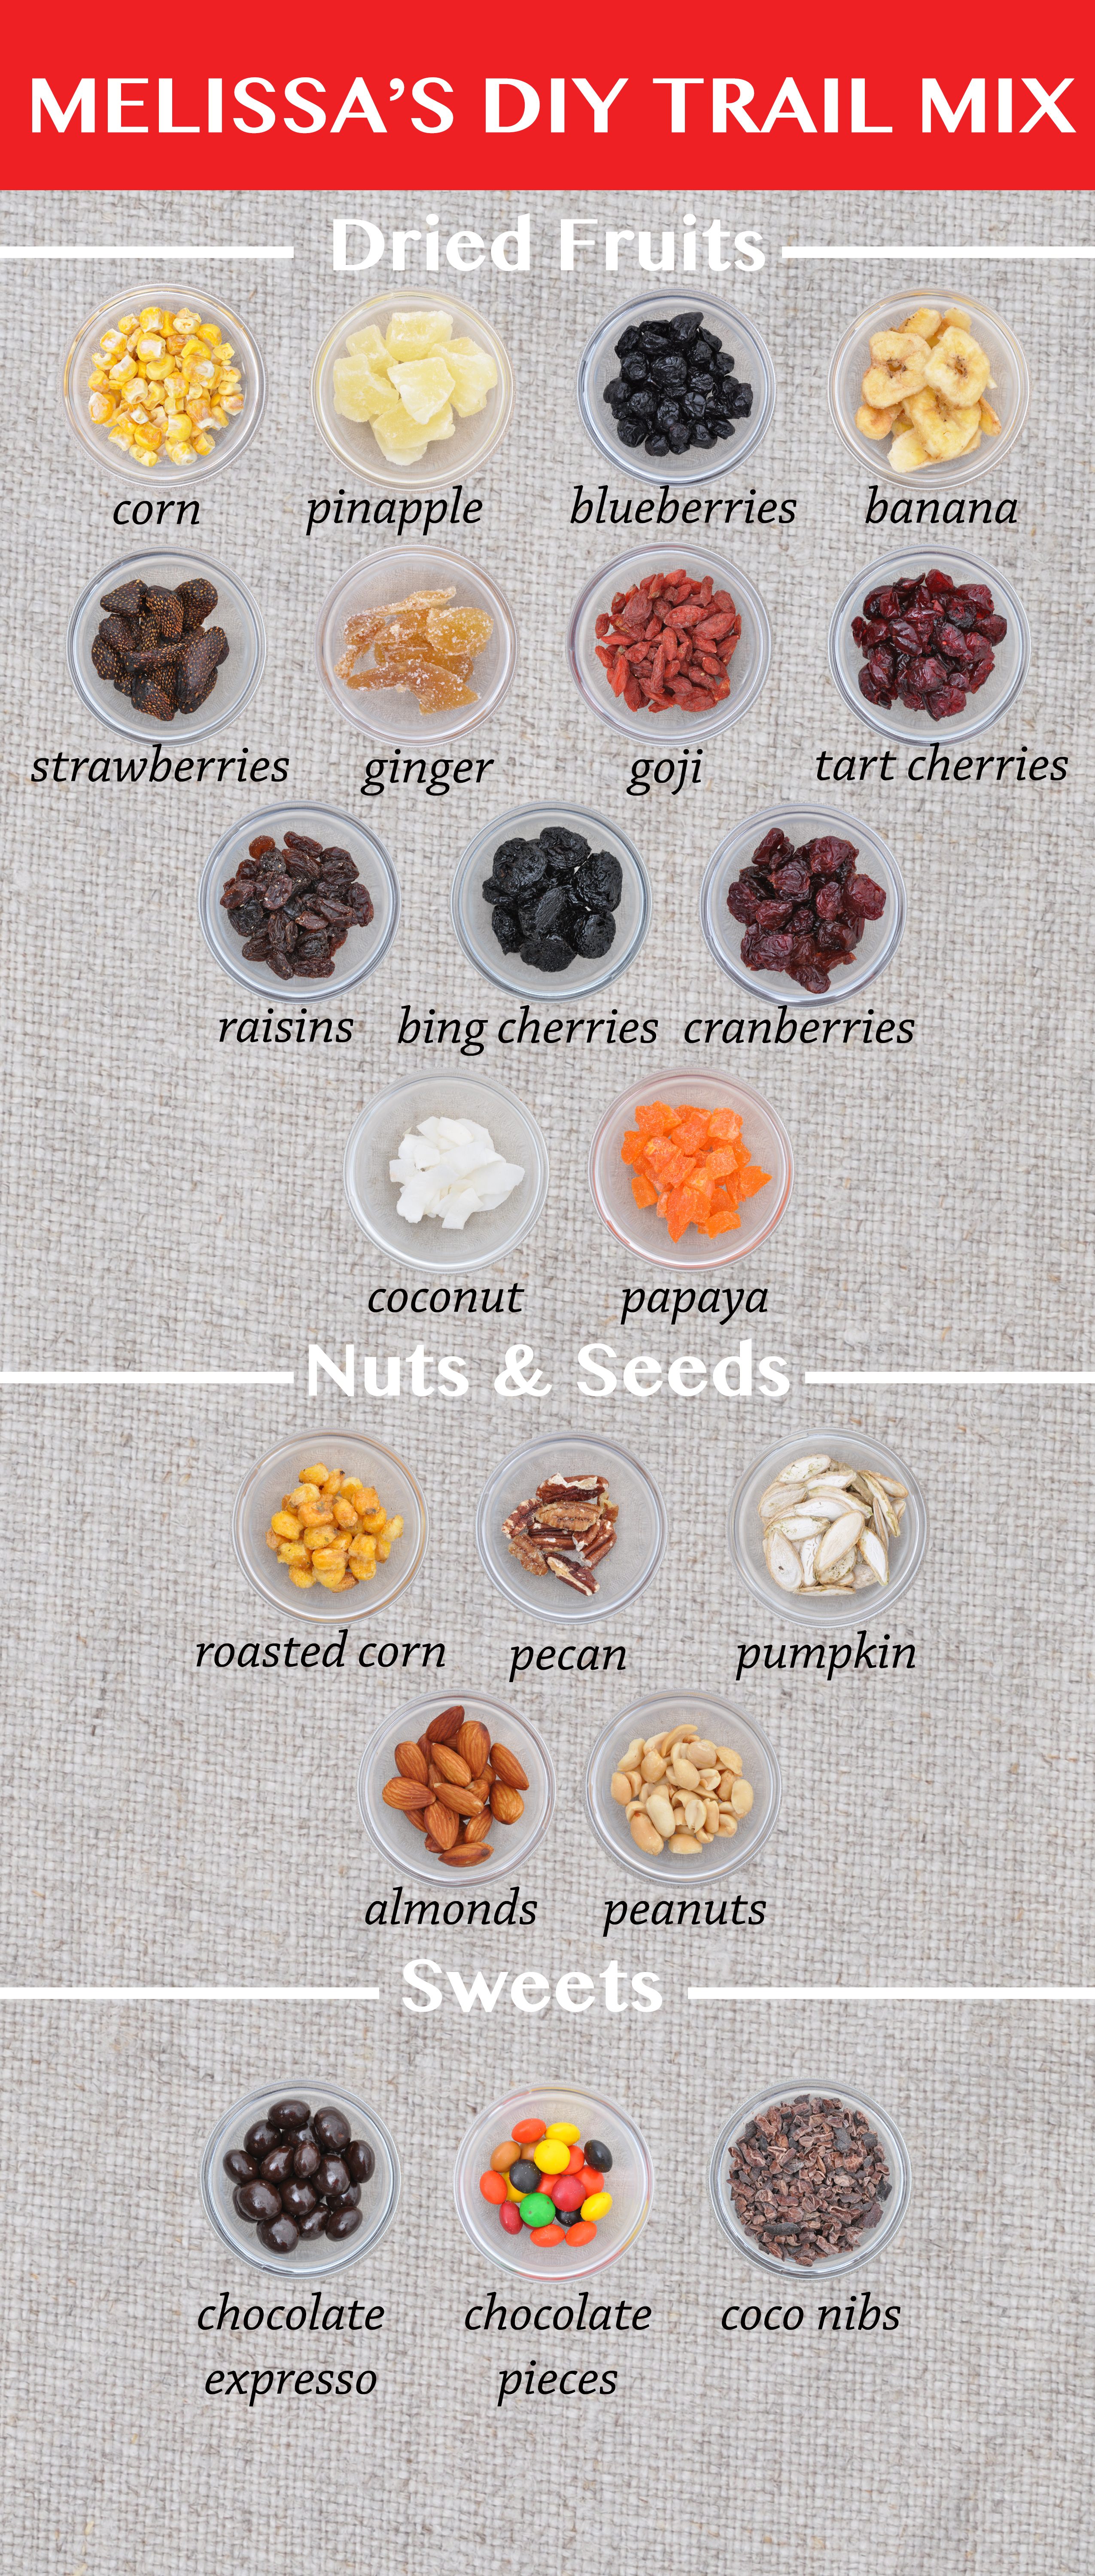 DIY Trail Mix Recipes to Make Yourself